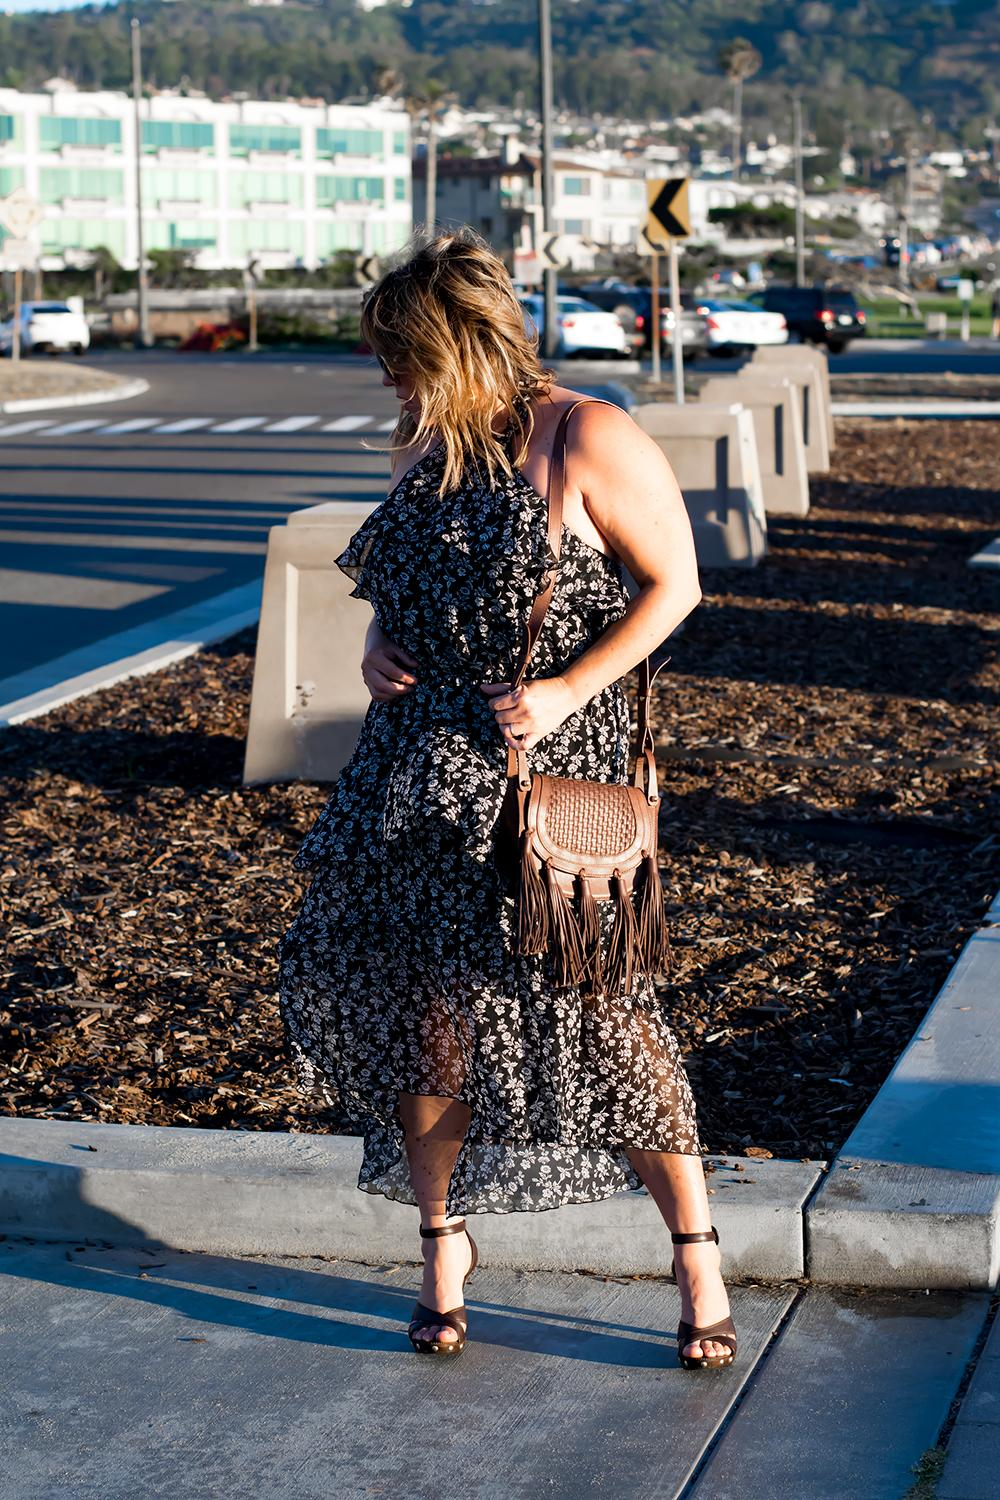 Tiered-Floral-Ruffle-Dress-The-Biggest-Summer-Trends-for-2017-Barefoot-in-LA-Fashion-Blog-Style-Ideas-Outfits--1243